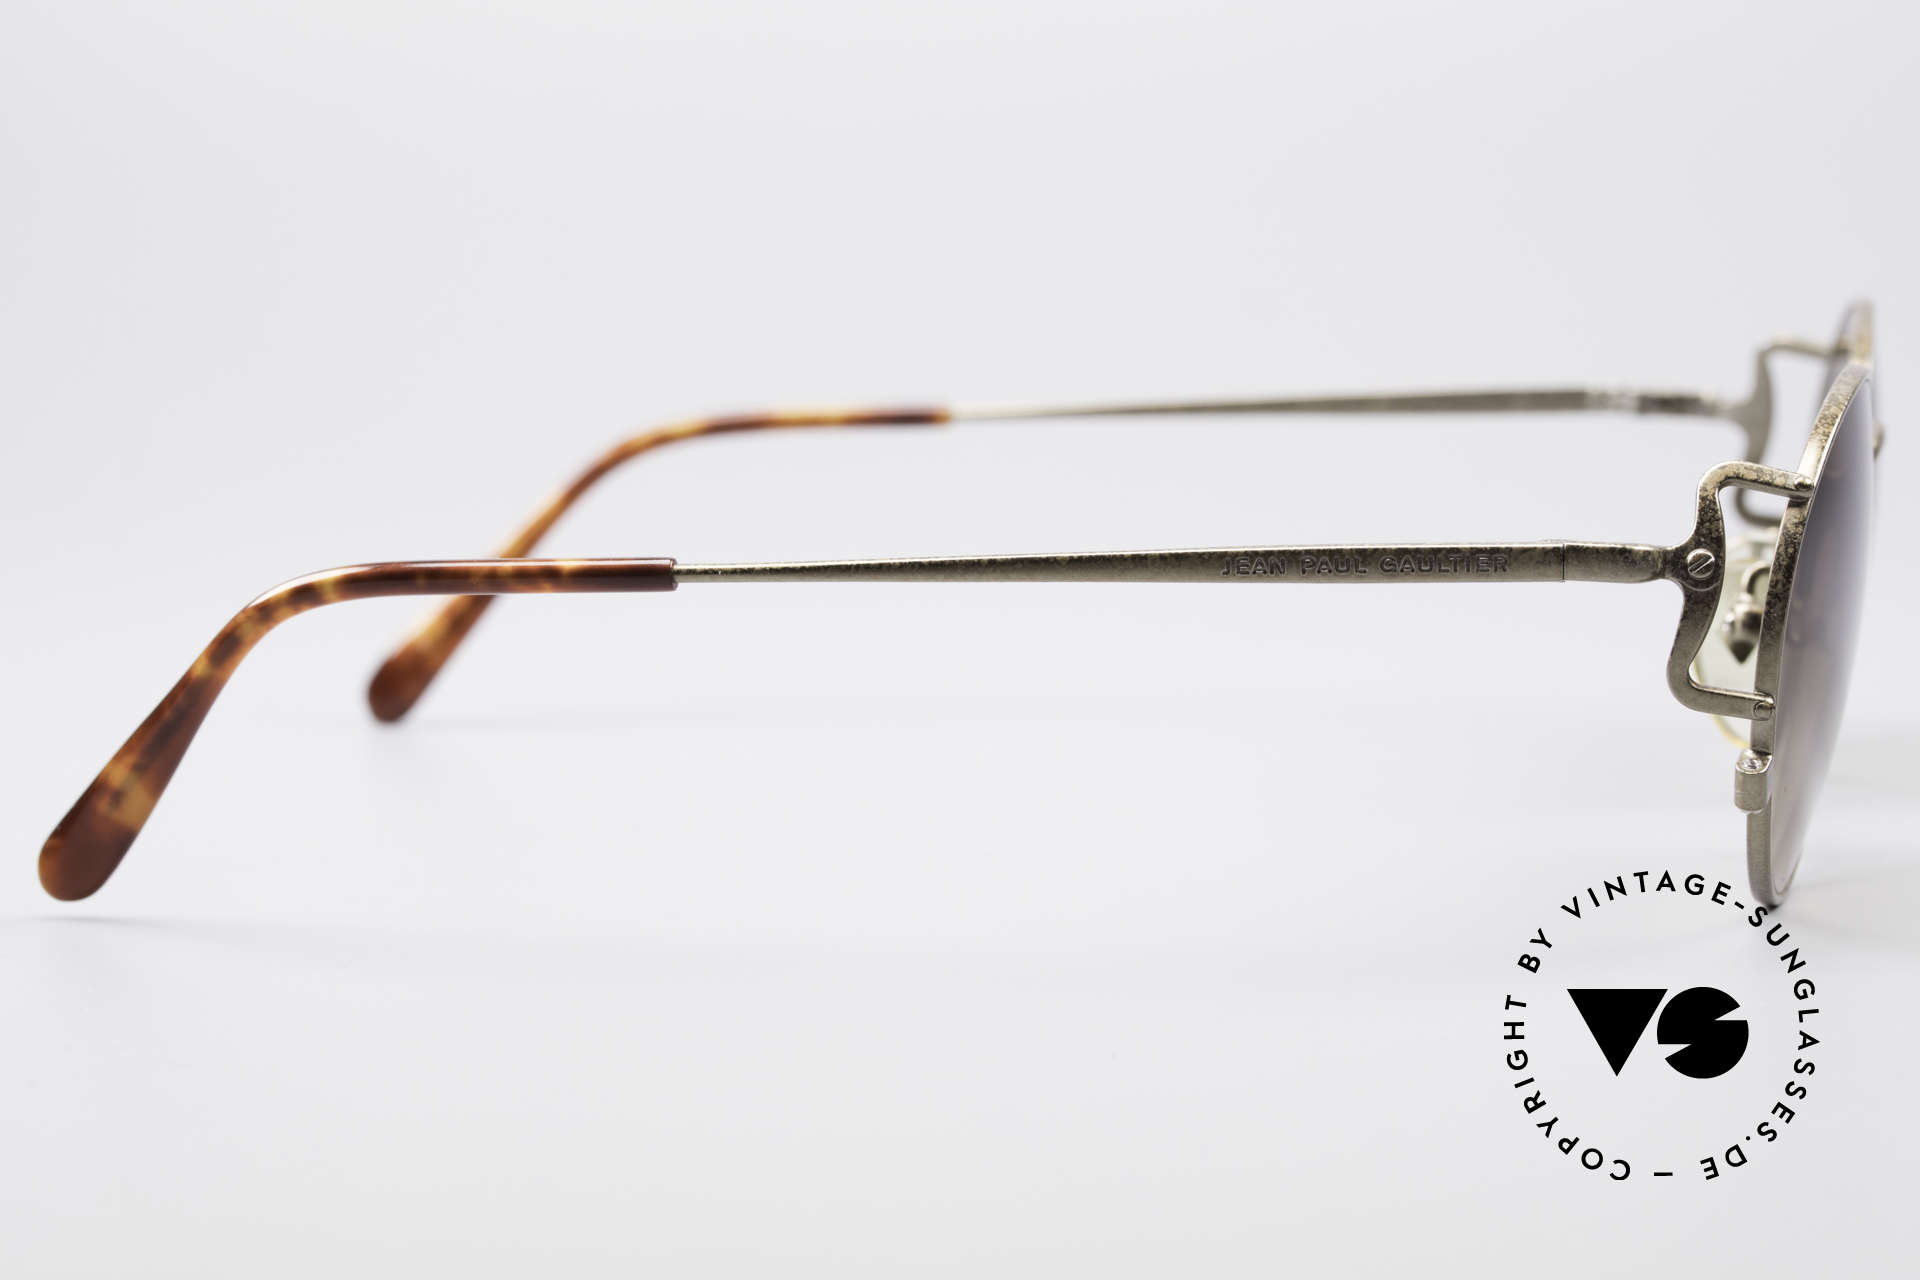 Jean Paul Gaultier 55-3178 90's Vintage No Retro Specs, sun lenses could be replaced with optical lenses, Made for Men and Women